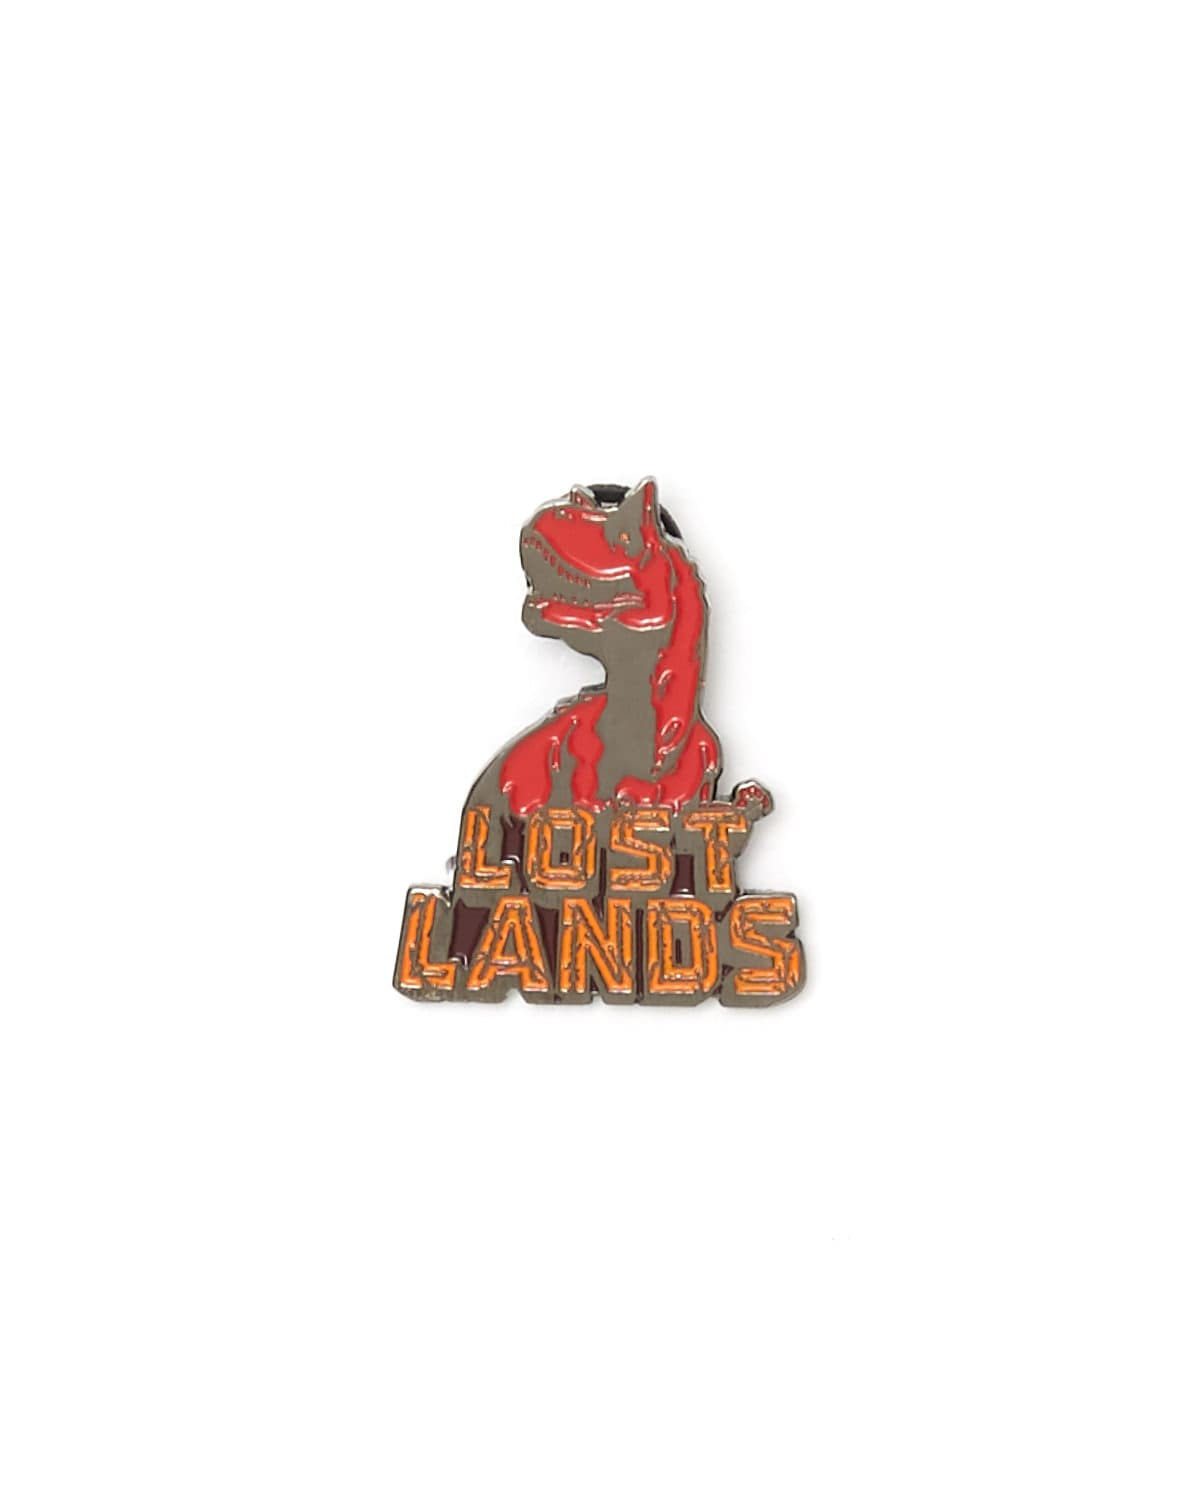 Lost Lands 'T-Rex' Enamel Pin - Red/Orange